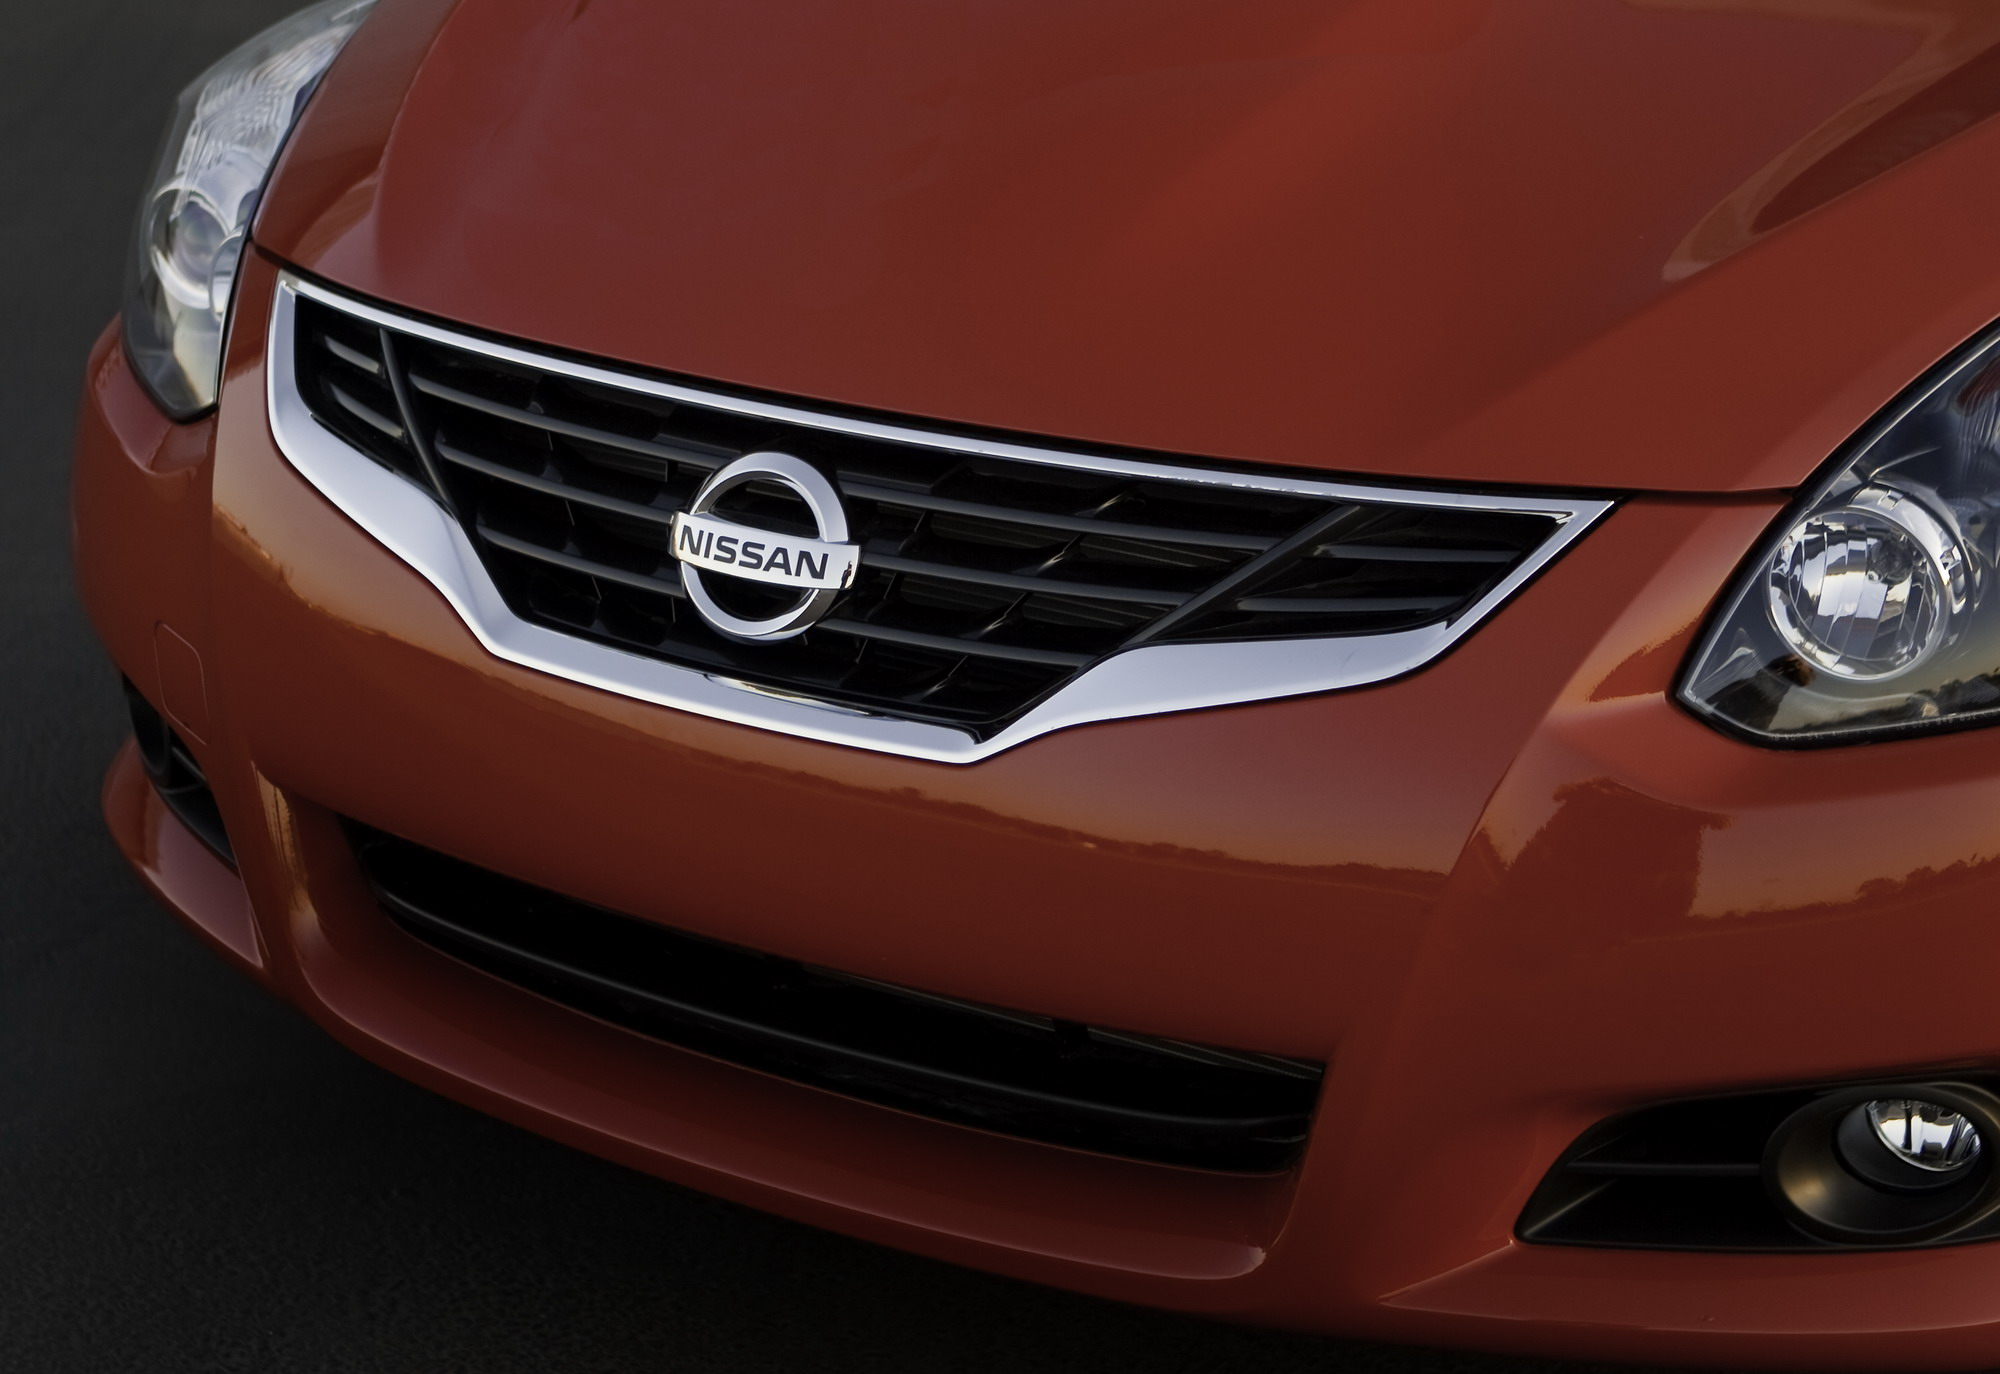 Nissan Altima: Xenon headlights (if so equipped)